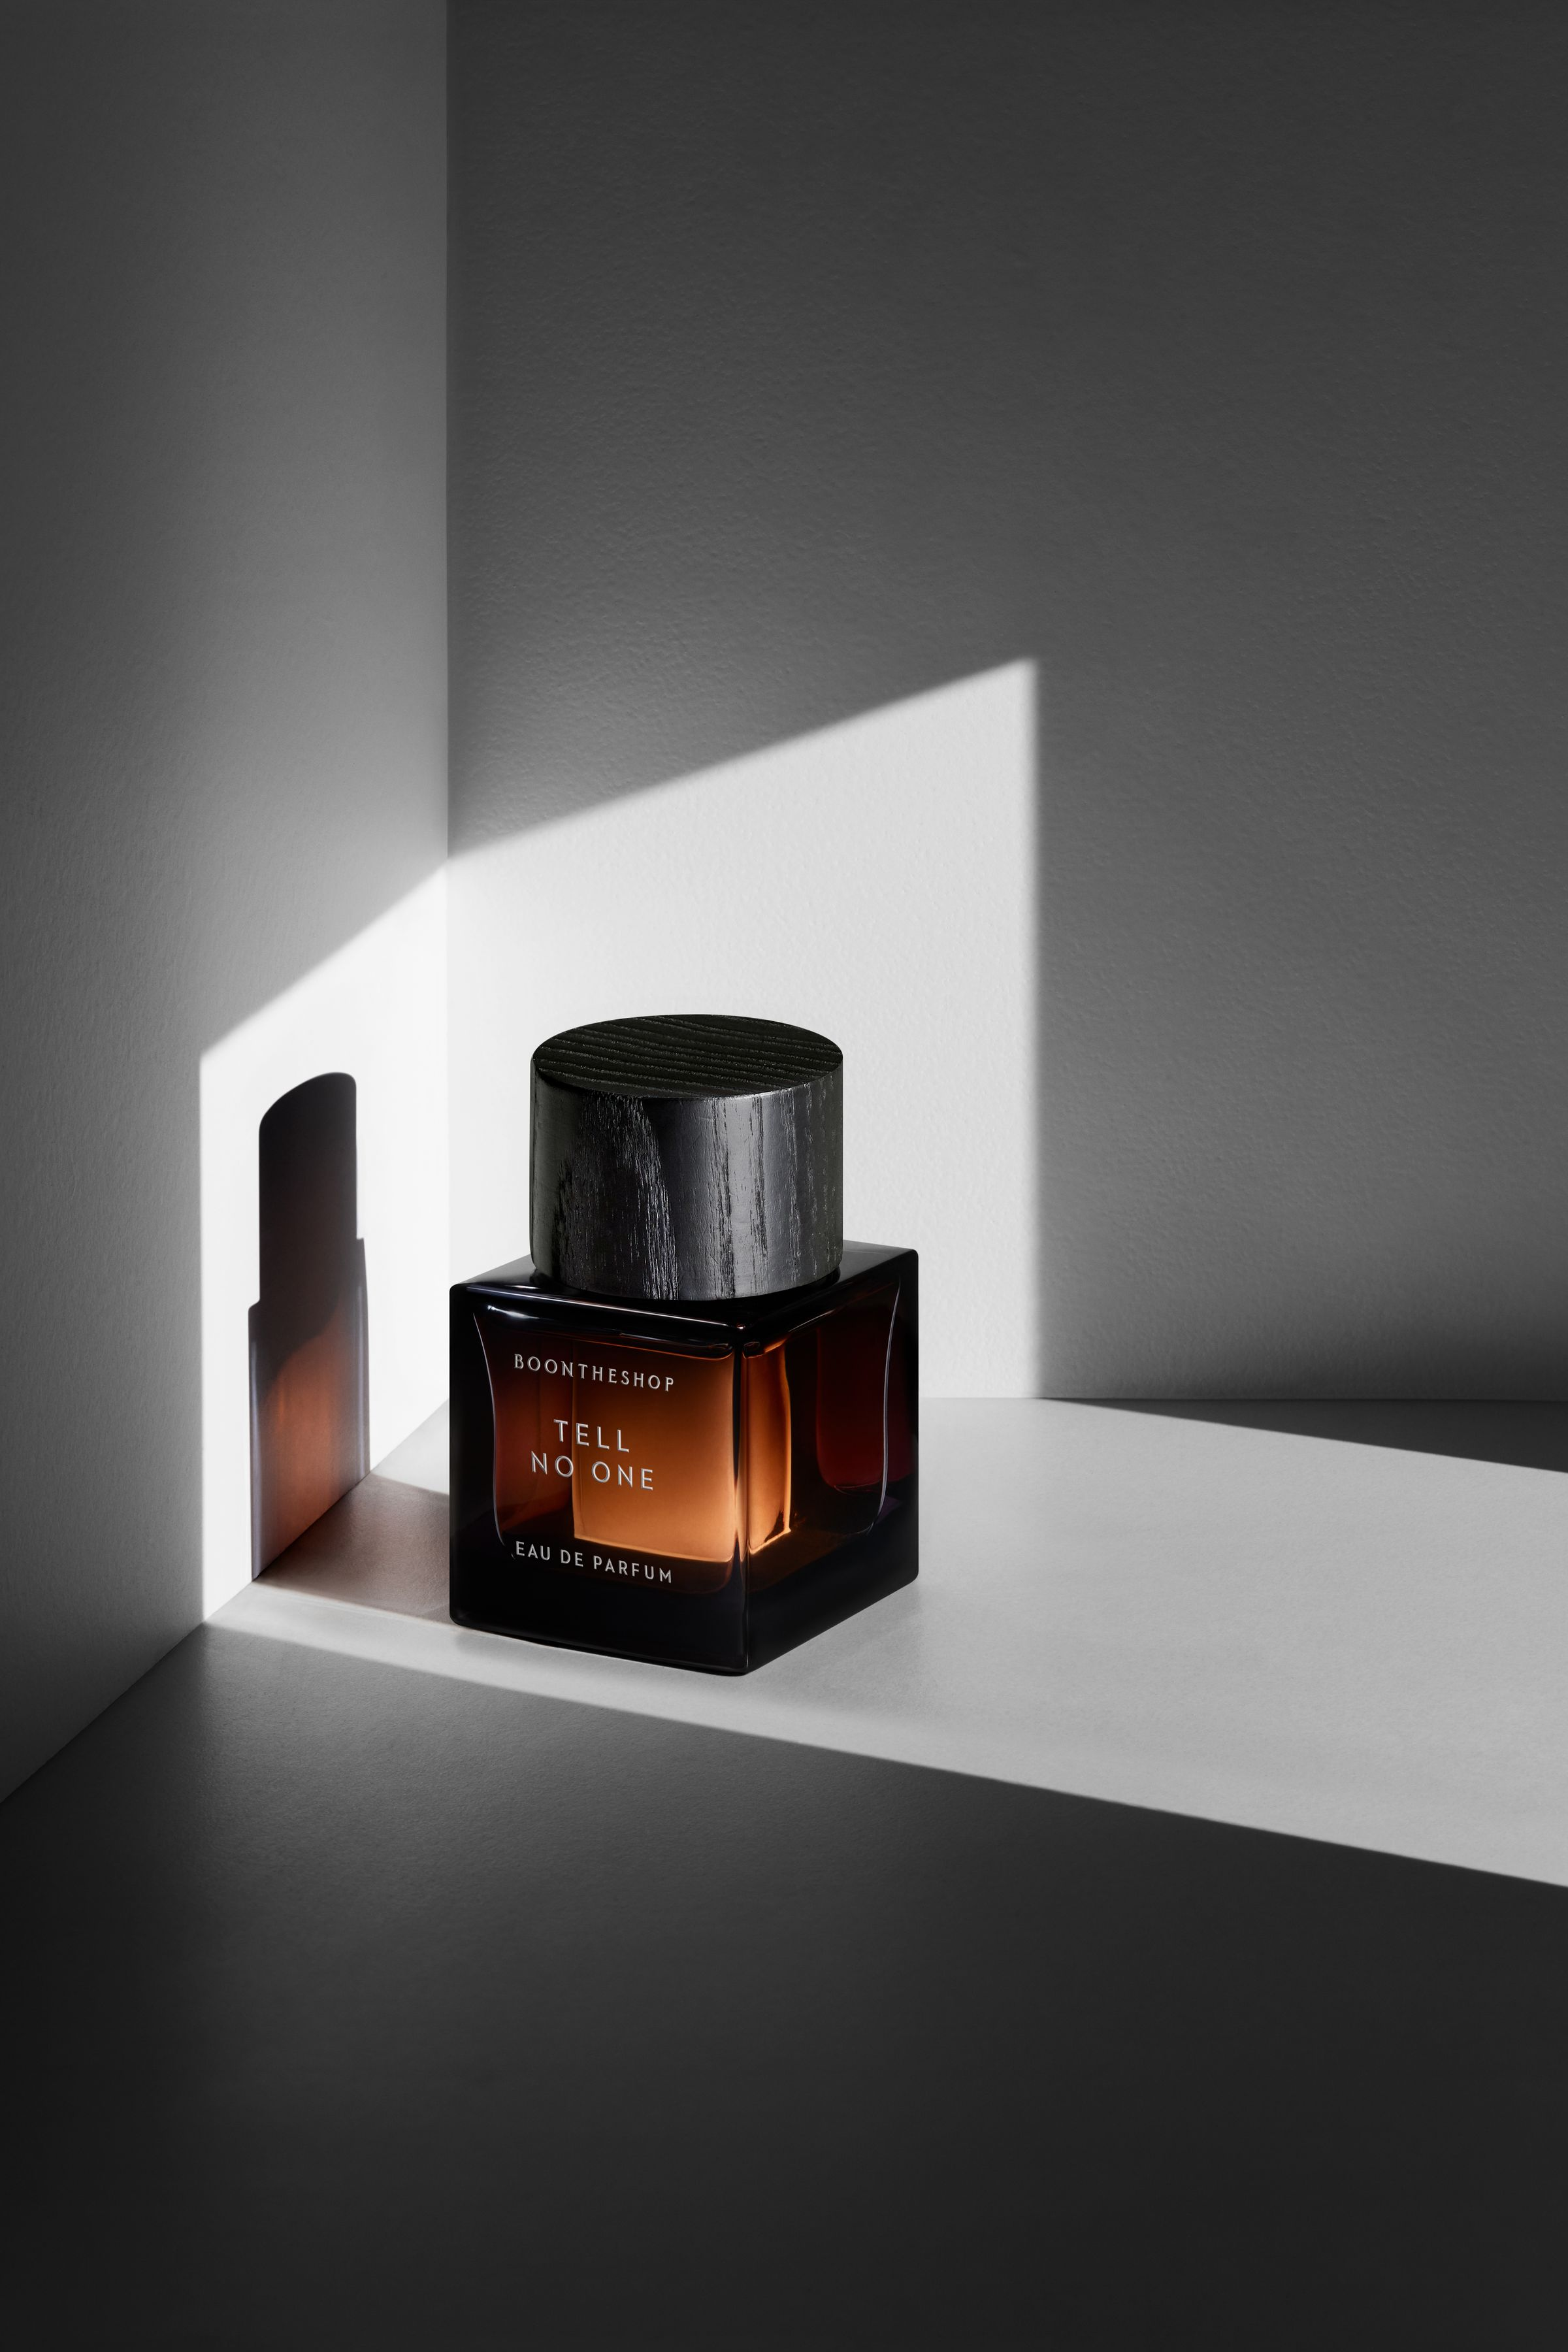 BOONTHESHOP fragrance campaign